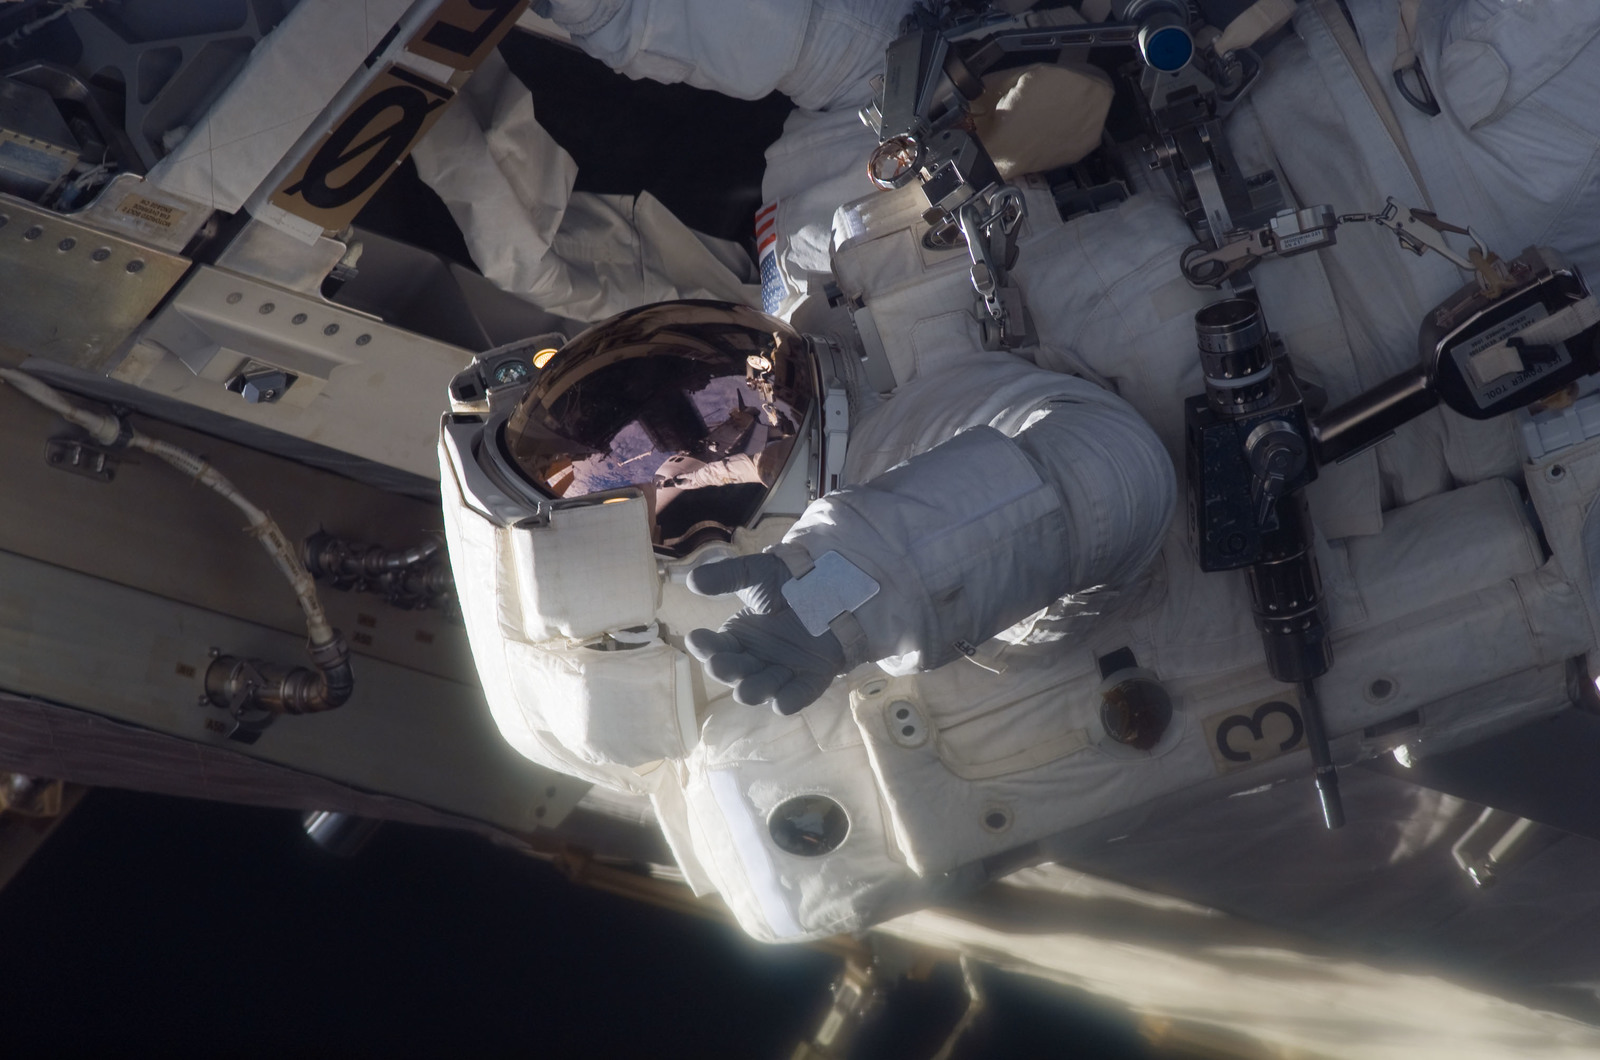 S115E06244 - STS-115 - Stefanyshyn-Piper performs third EVA during STS-115 / Expedition Joint Operations